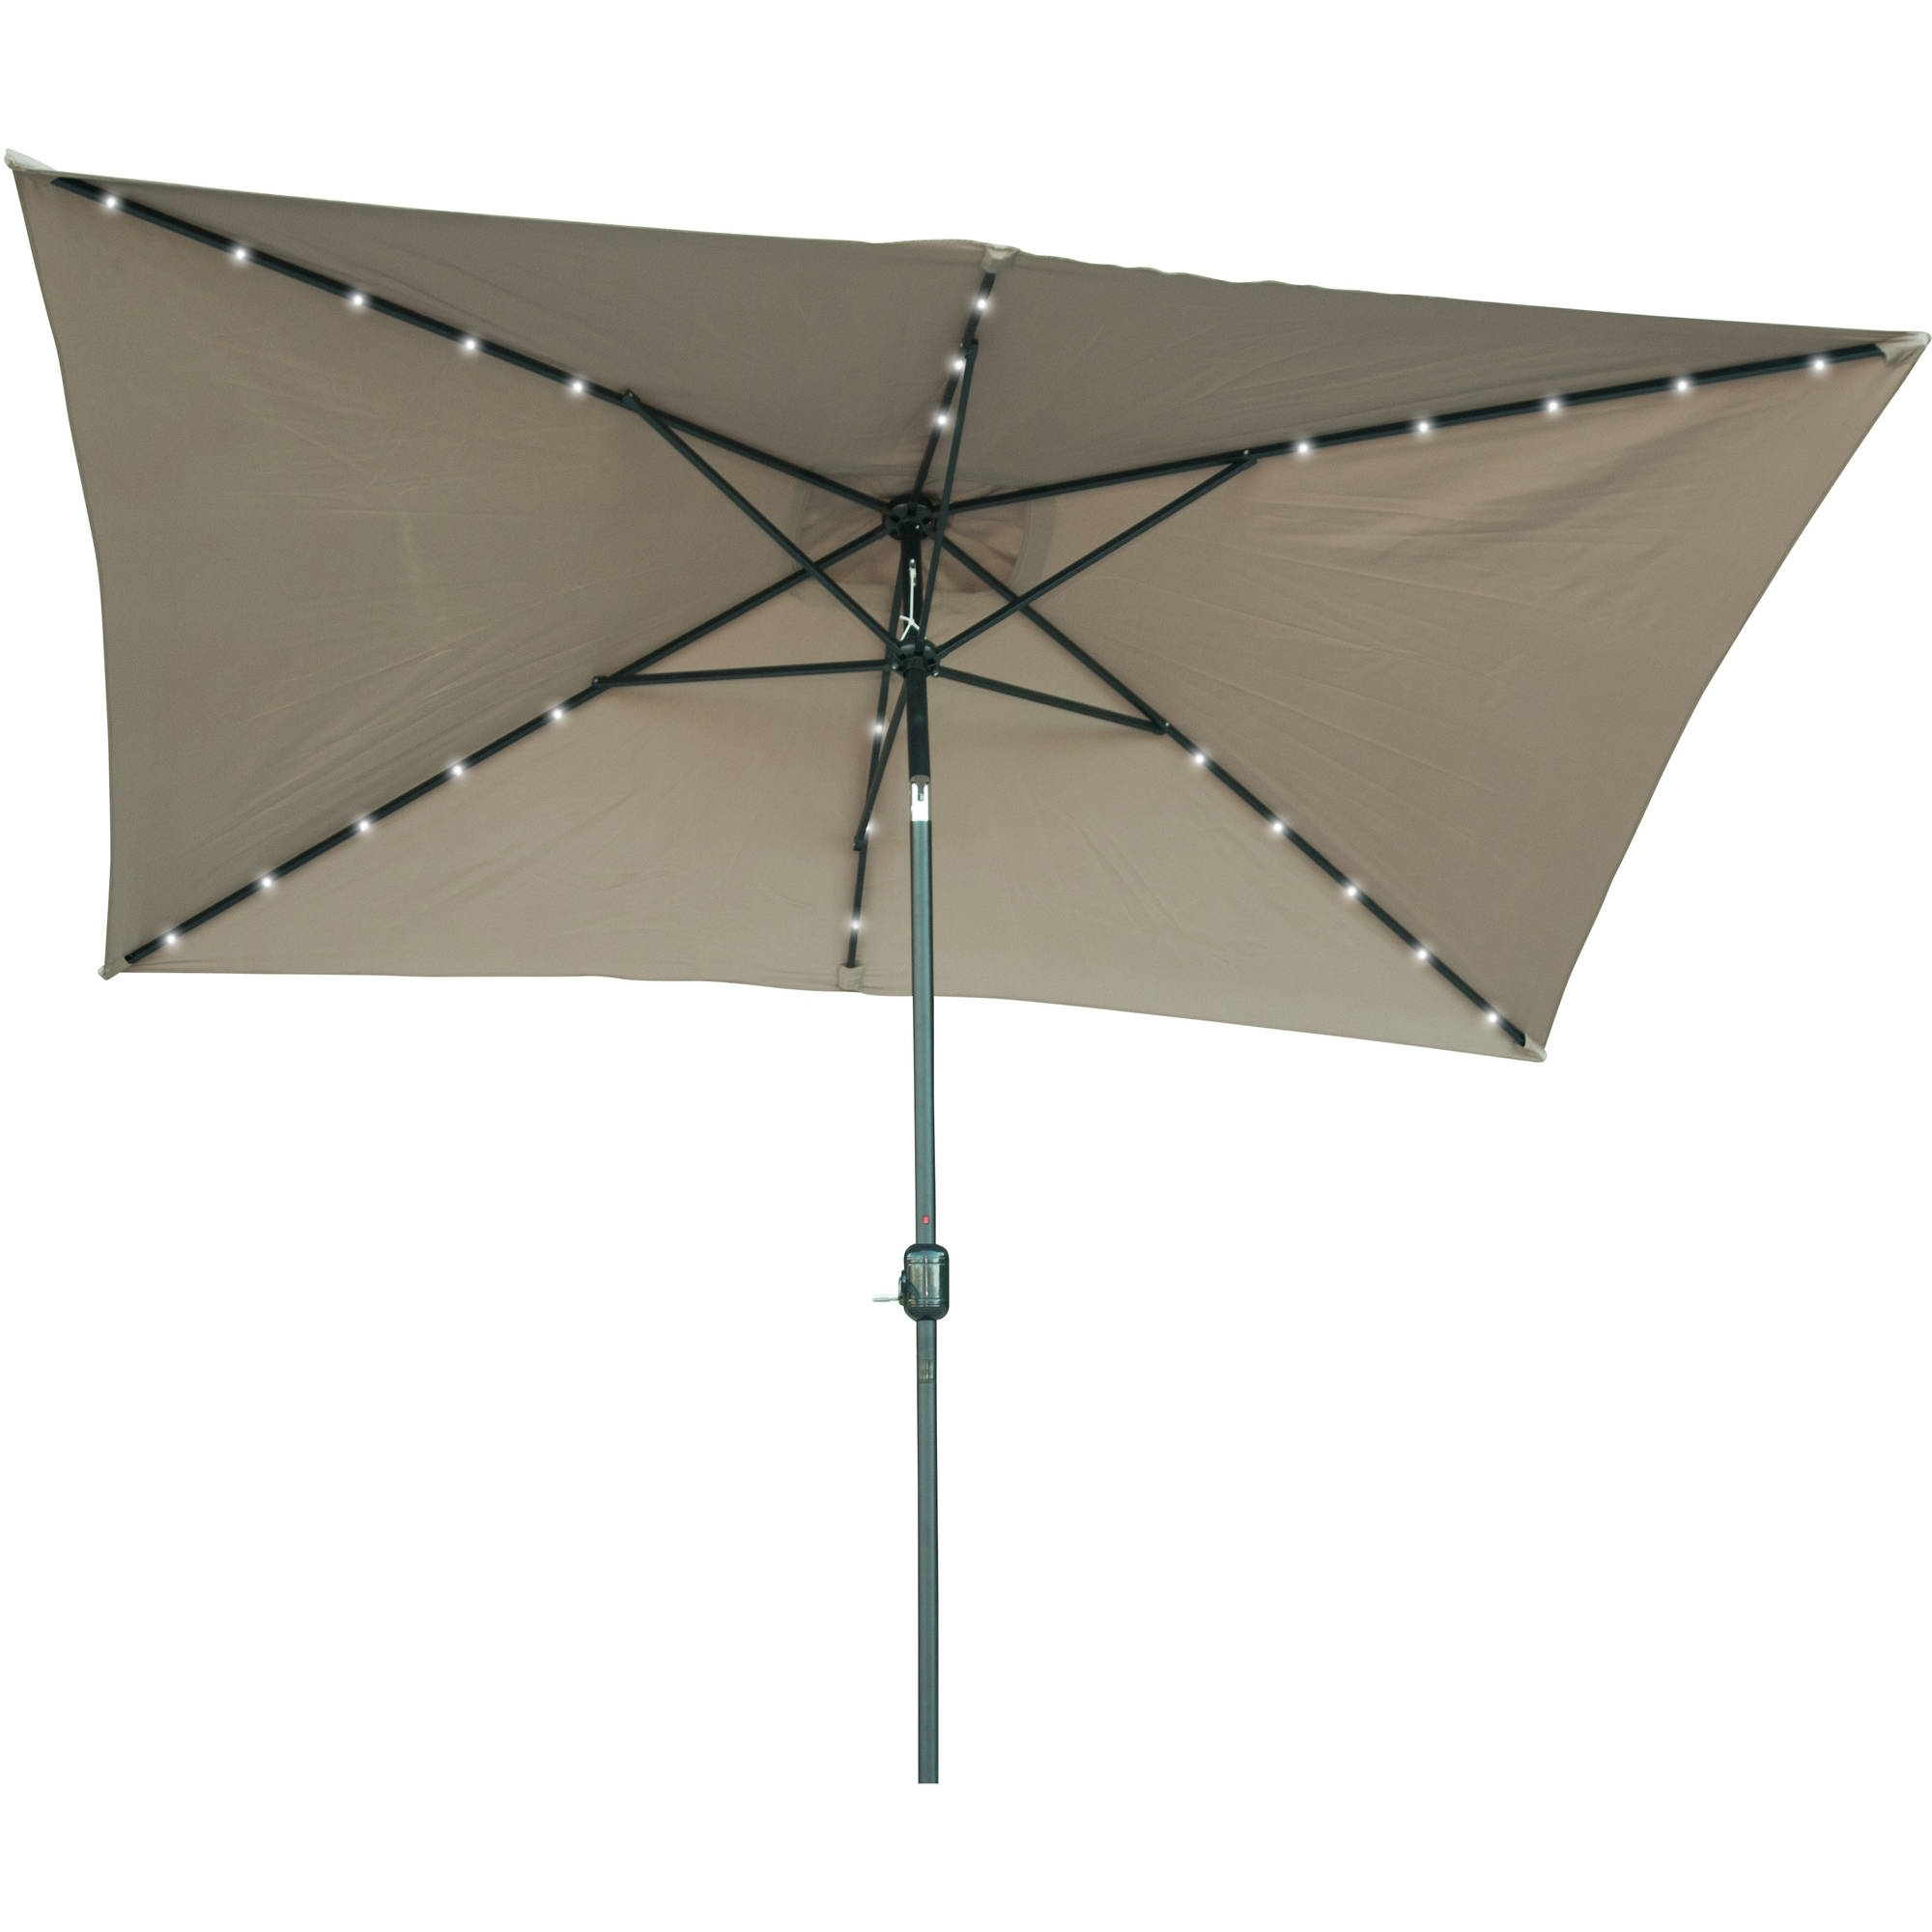 Led Patio Umbrellas Intended For Best And Newest Rectangular Solar Powered Led Lighted Patio Umbrella – 10' X  (View 5 of 20)